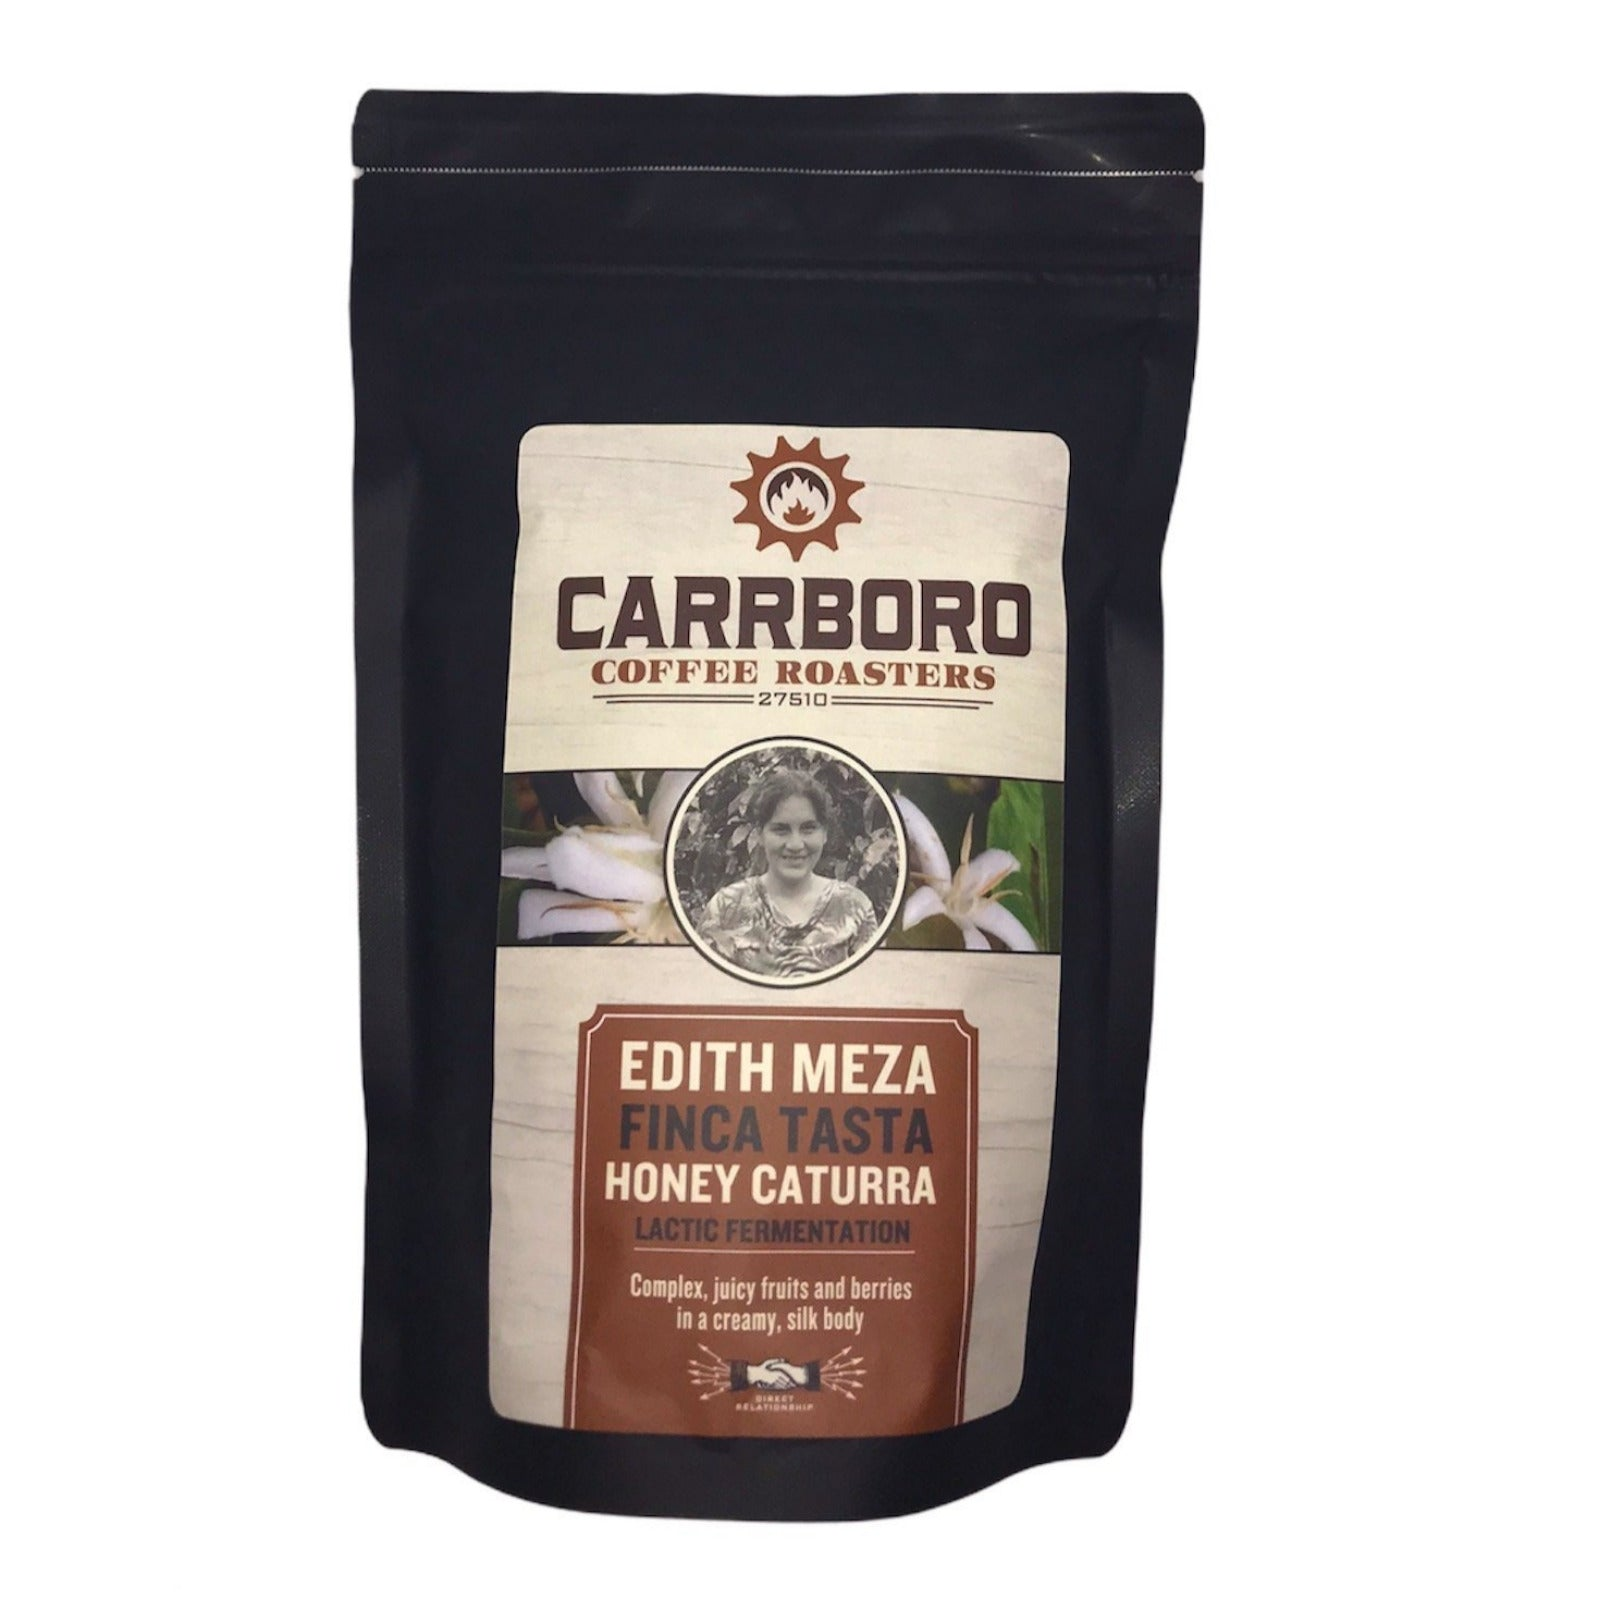 Edith Meza - Finca Tasta - Honey Caturra Lactic Fermentation